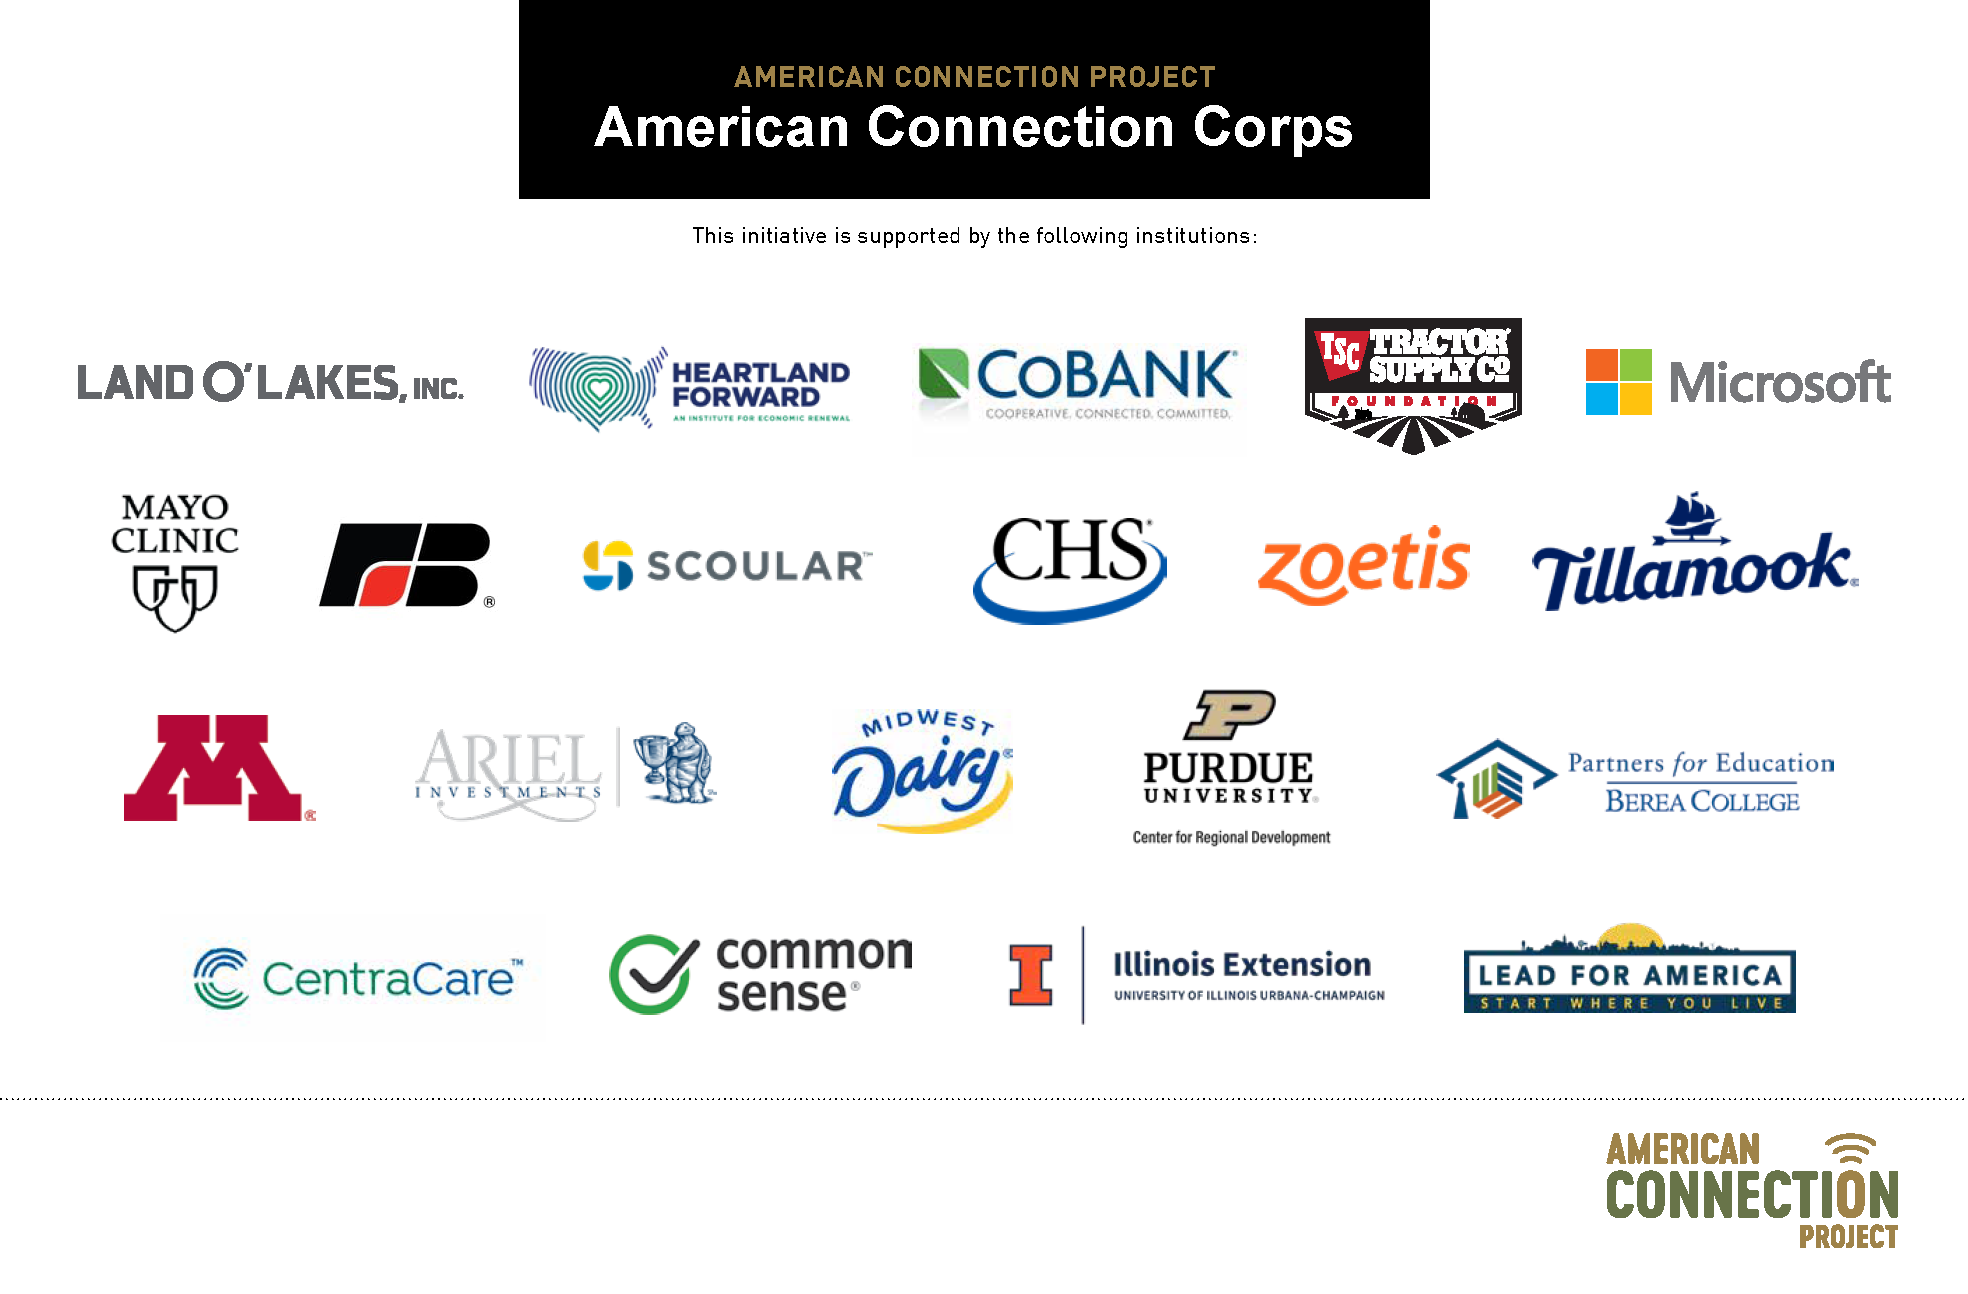 What partner organizations are saying about the American Connection Corps